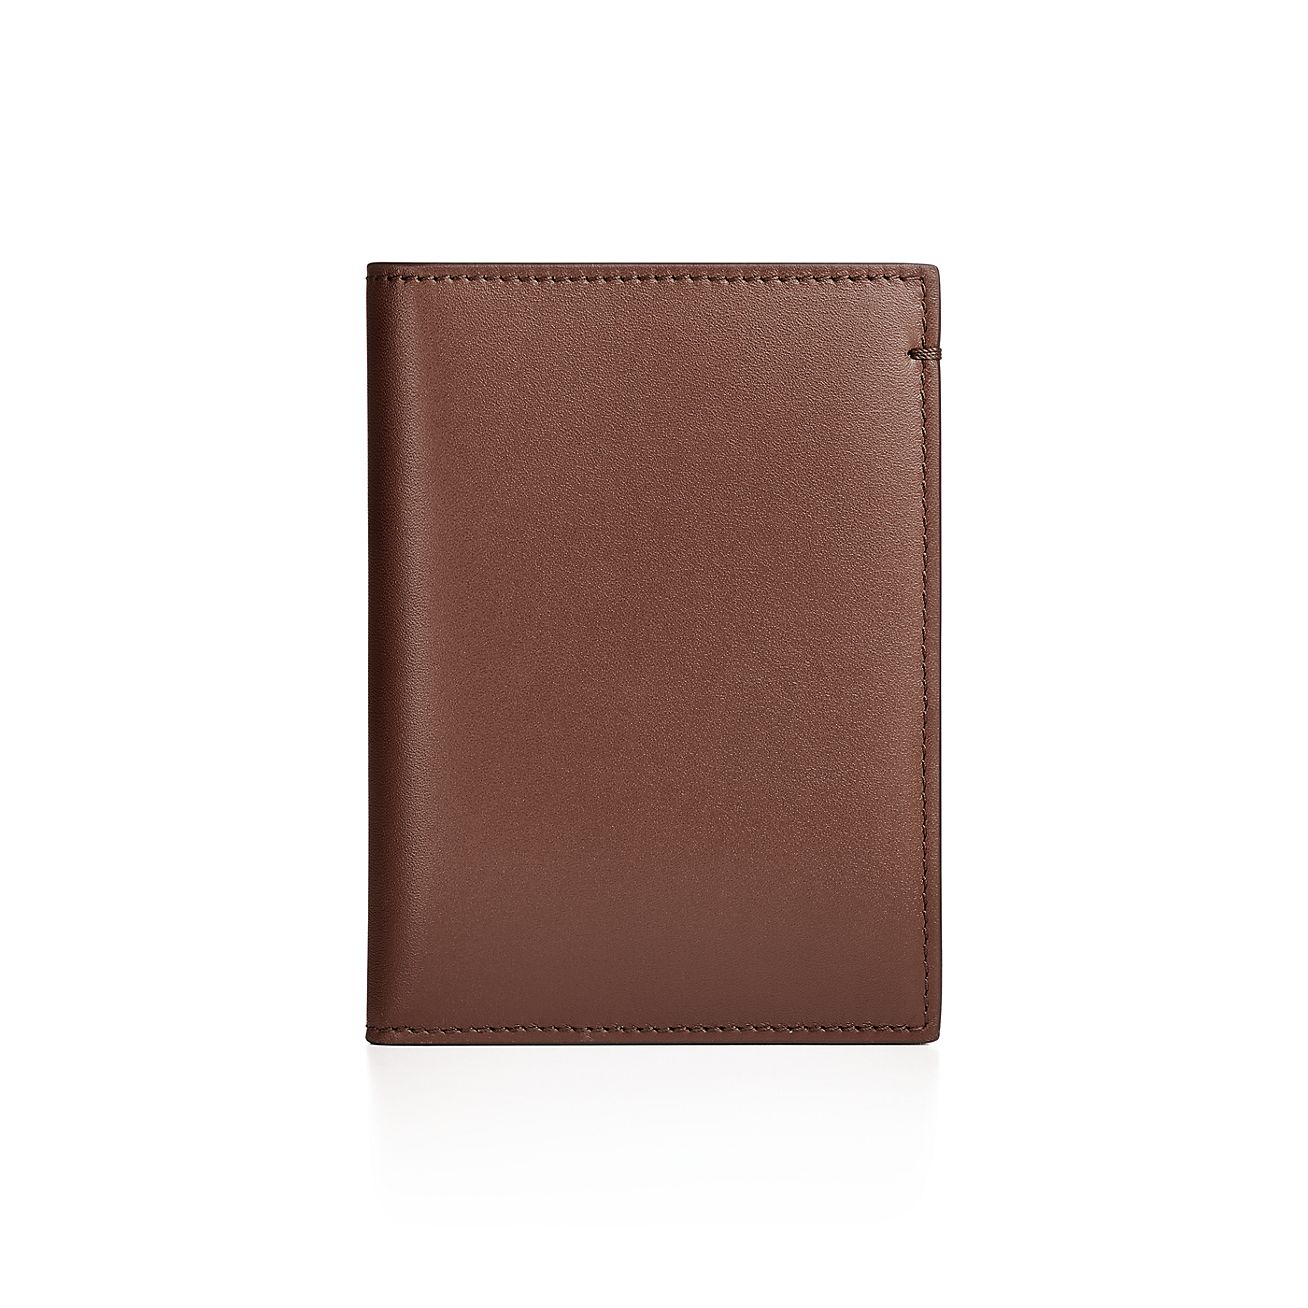 Passport cover in saddle smooth calfskin leather Tiffany & Co.